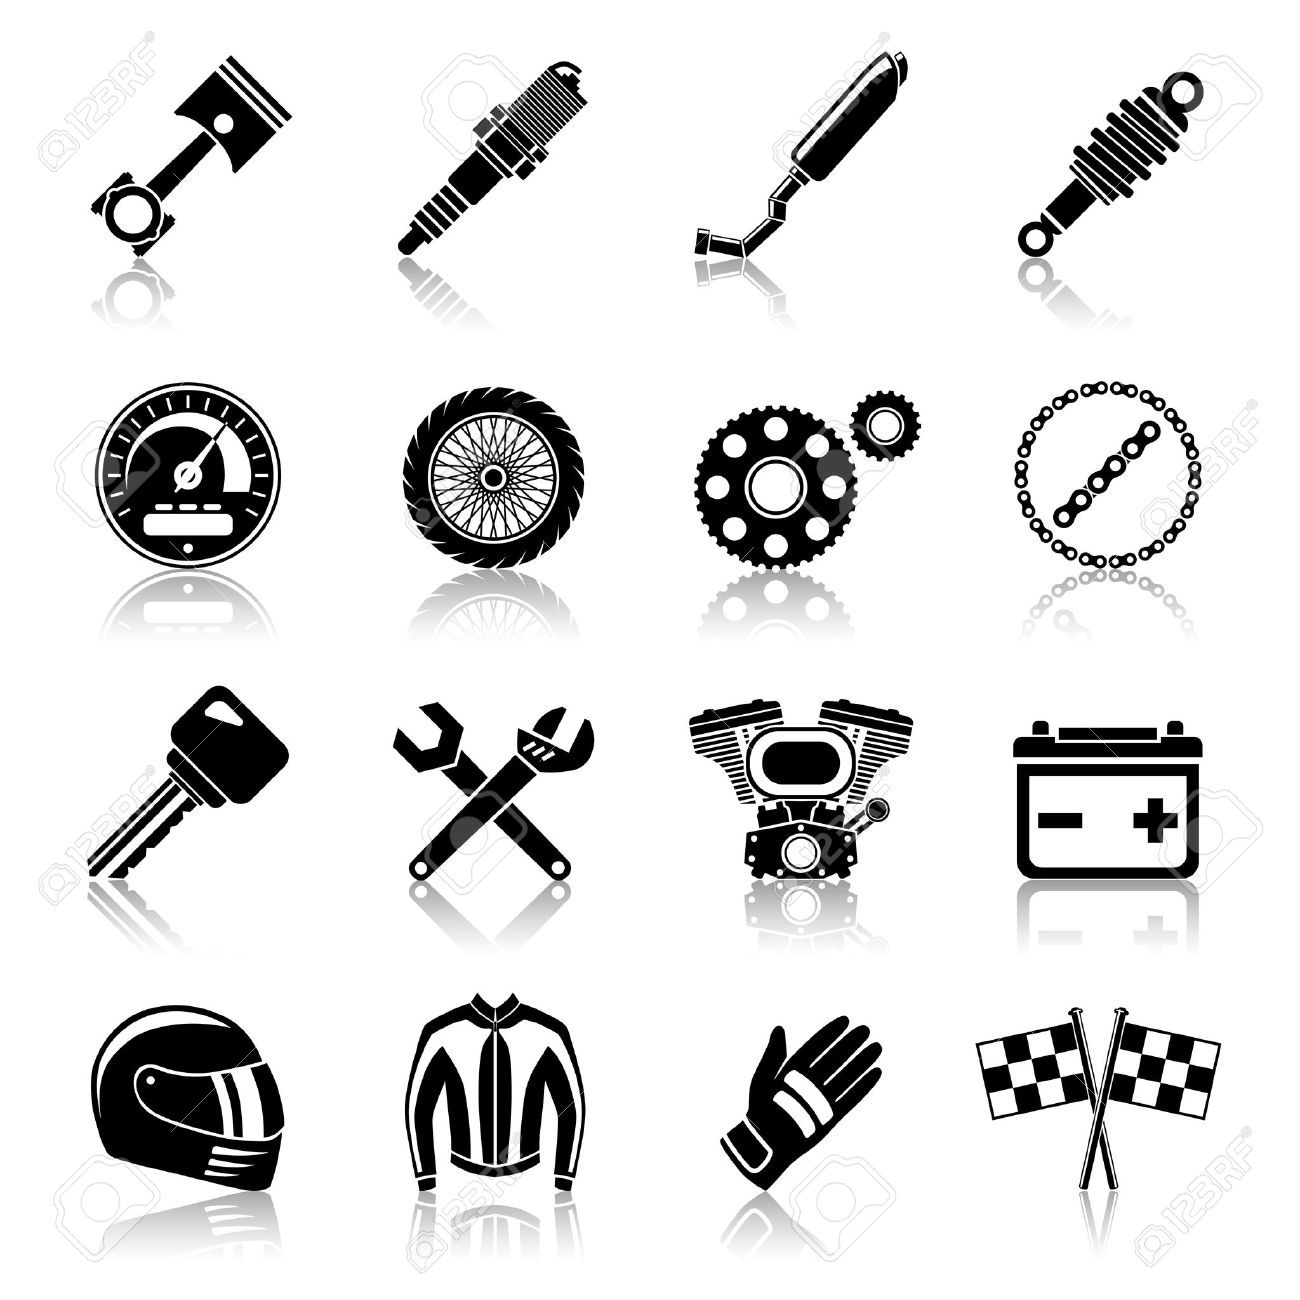 Motorcycle parts black icon set with helmet spanner tires isolated vector illustration - 33844362